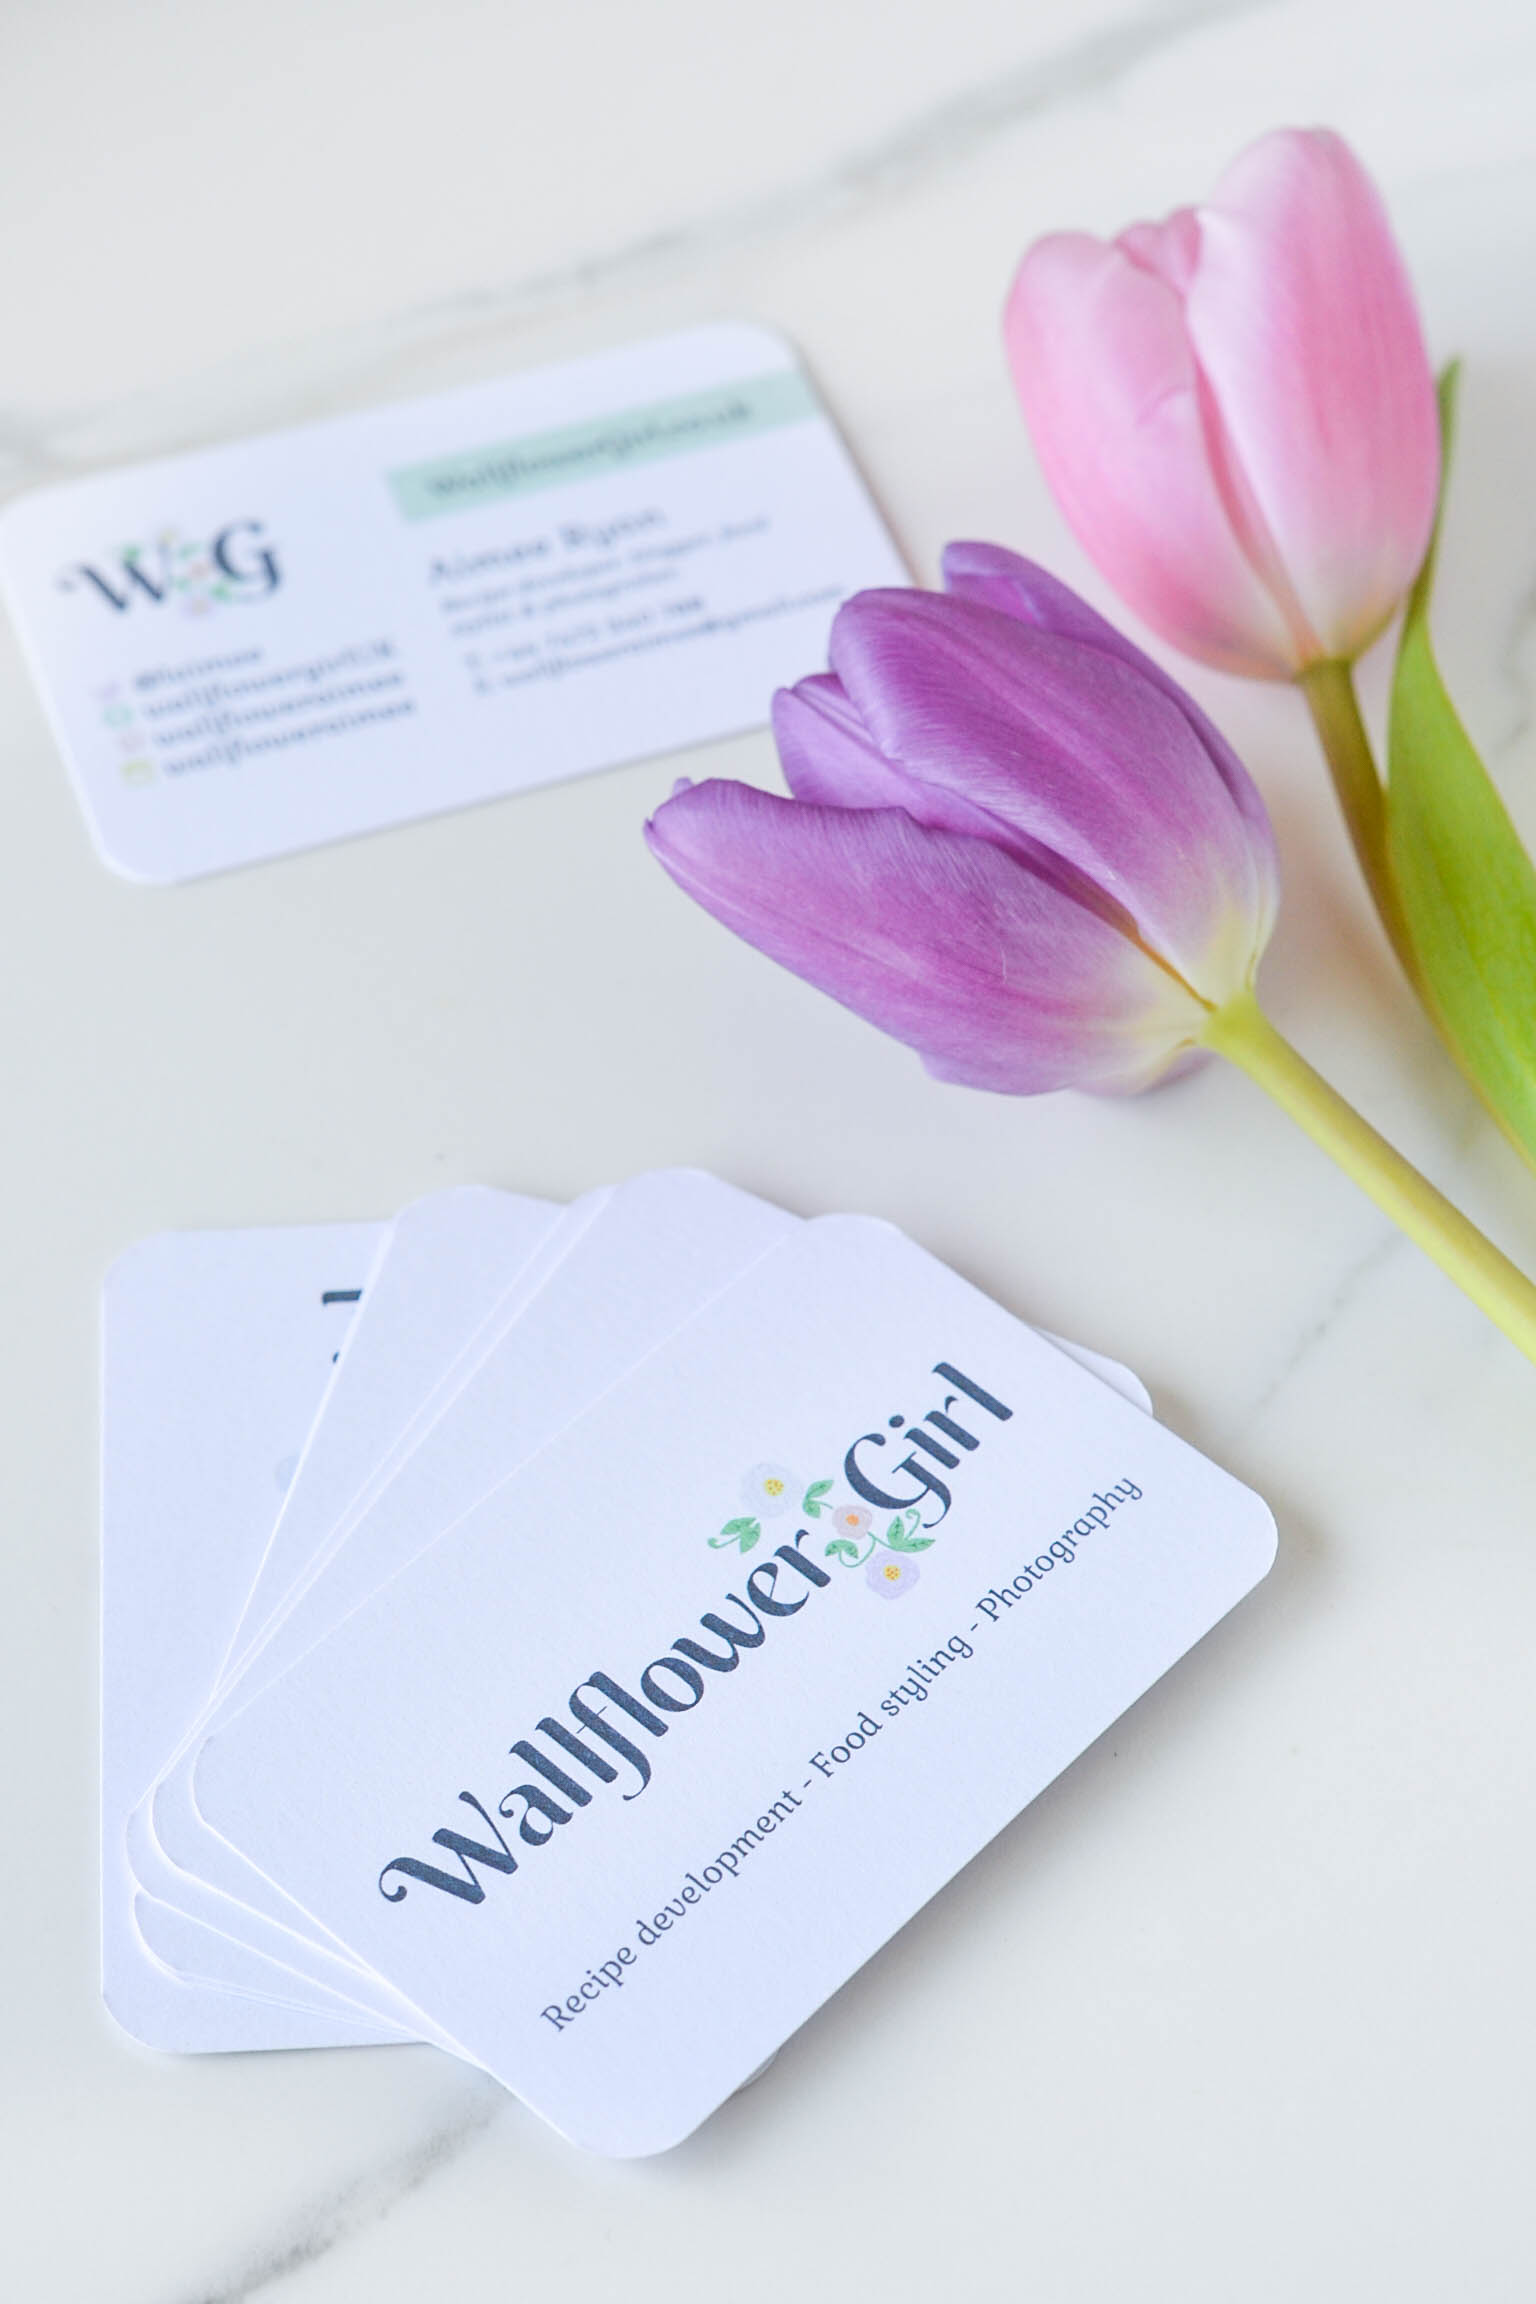 Myprint 247 business cards review giveaway uk wallflower kitchen myprint 247 business cards review giveaway uk reheart Gallery